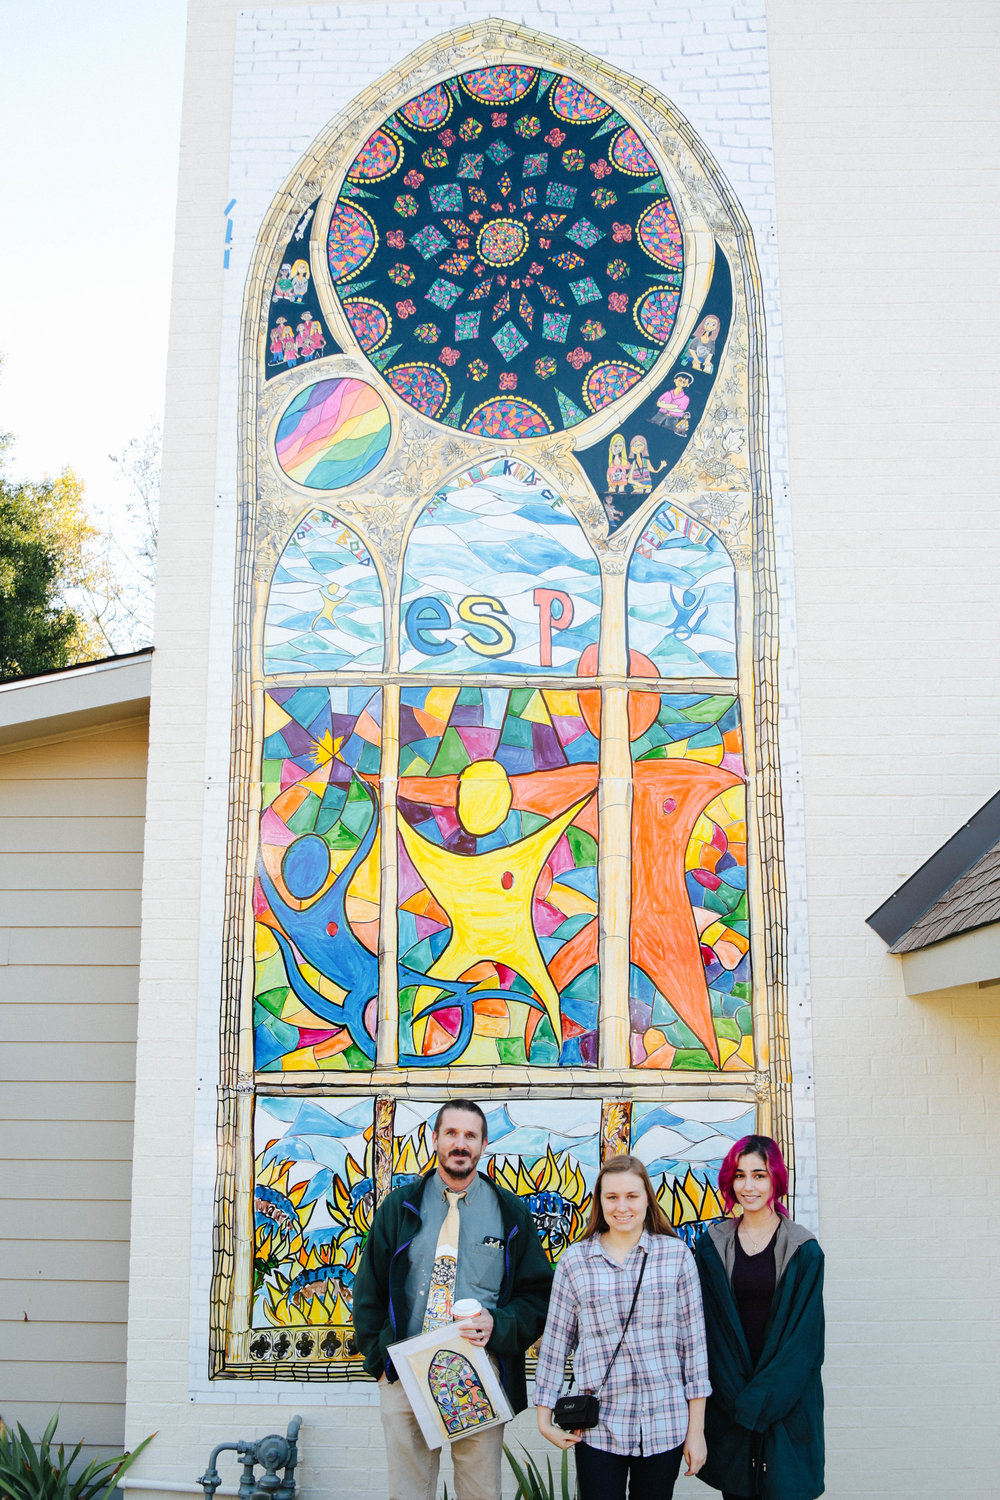 Extra Special People, Inc. Mural    2017    Jamie Calkin (lead artist), Deanna Dowlatpanah, Arezou Taeed, and ESP artist.    Waterproof Inks on aluminum panels    20 feet tall by 8 feet wide    Located 189 VFW Dr, Watkinsville, GA    Photo credit: The incredible Rachel Owart